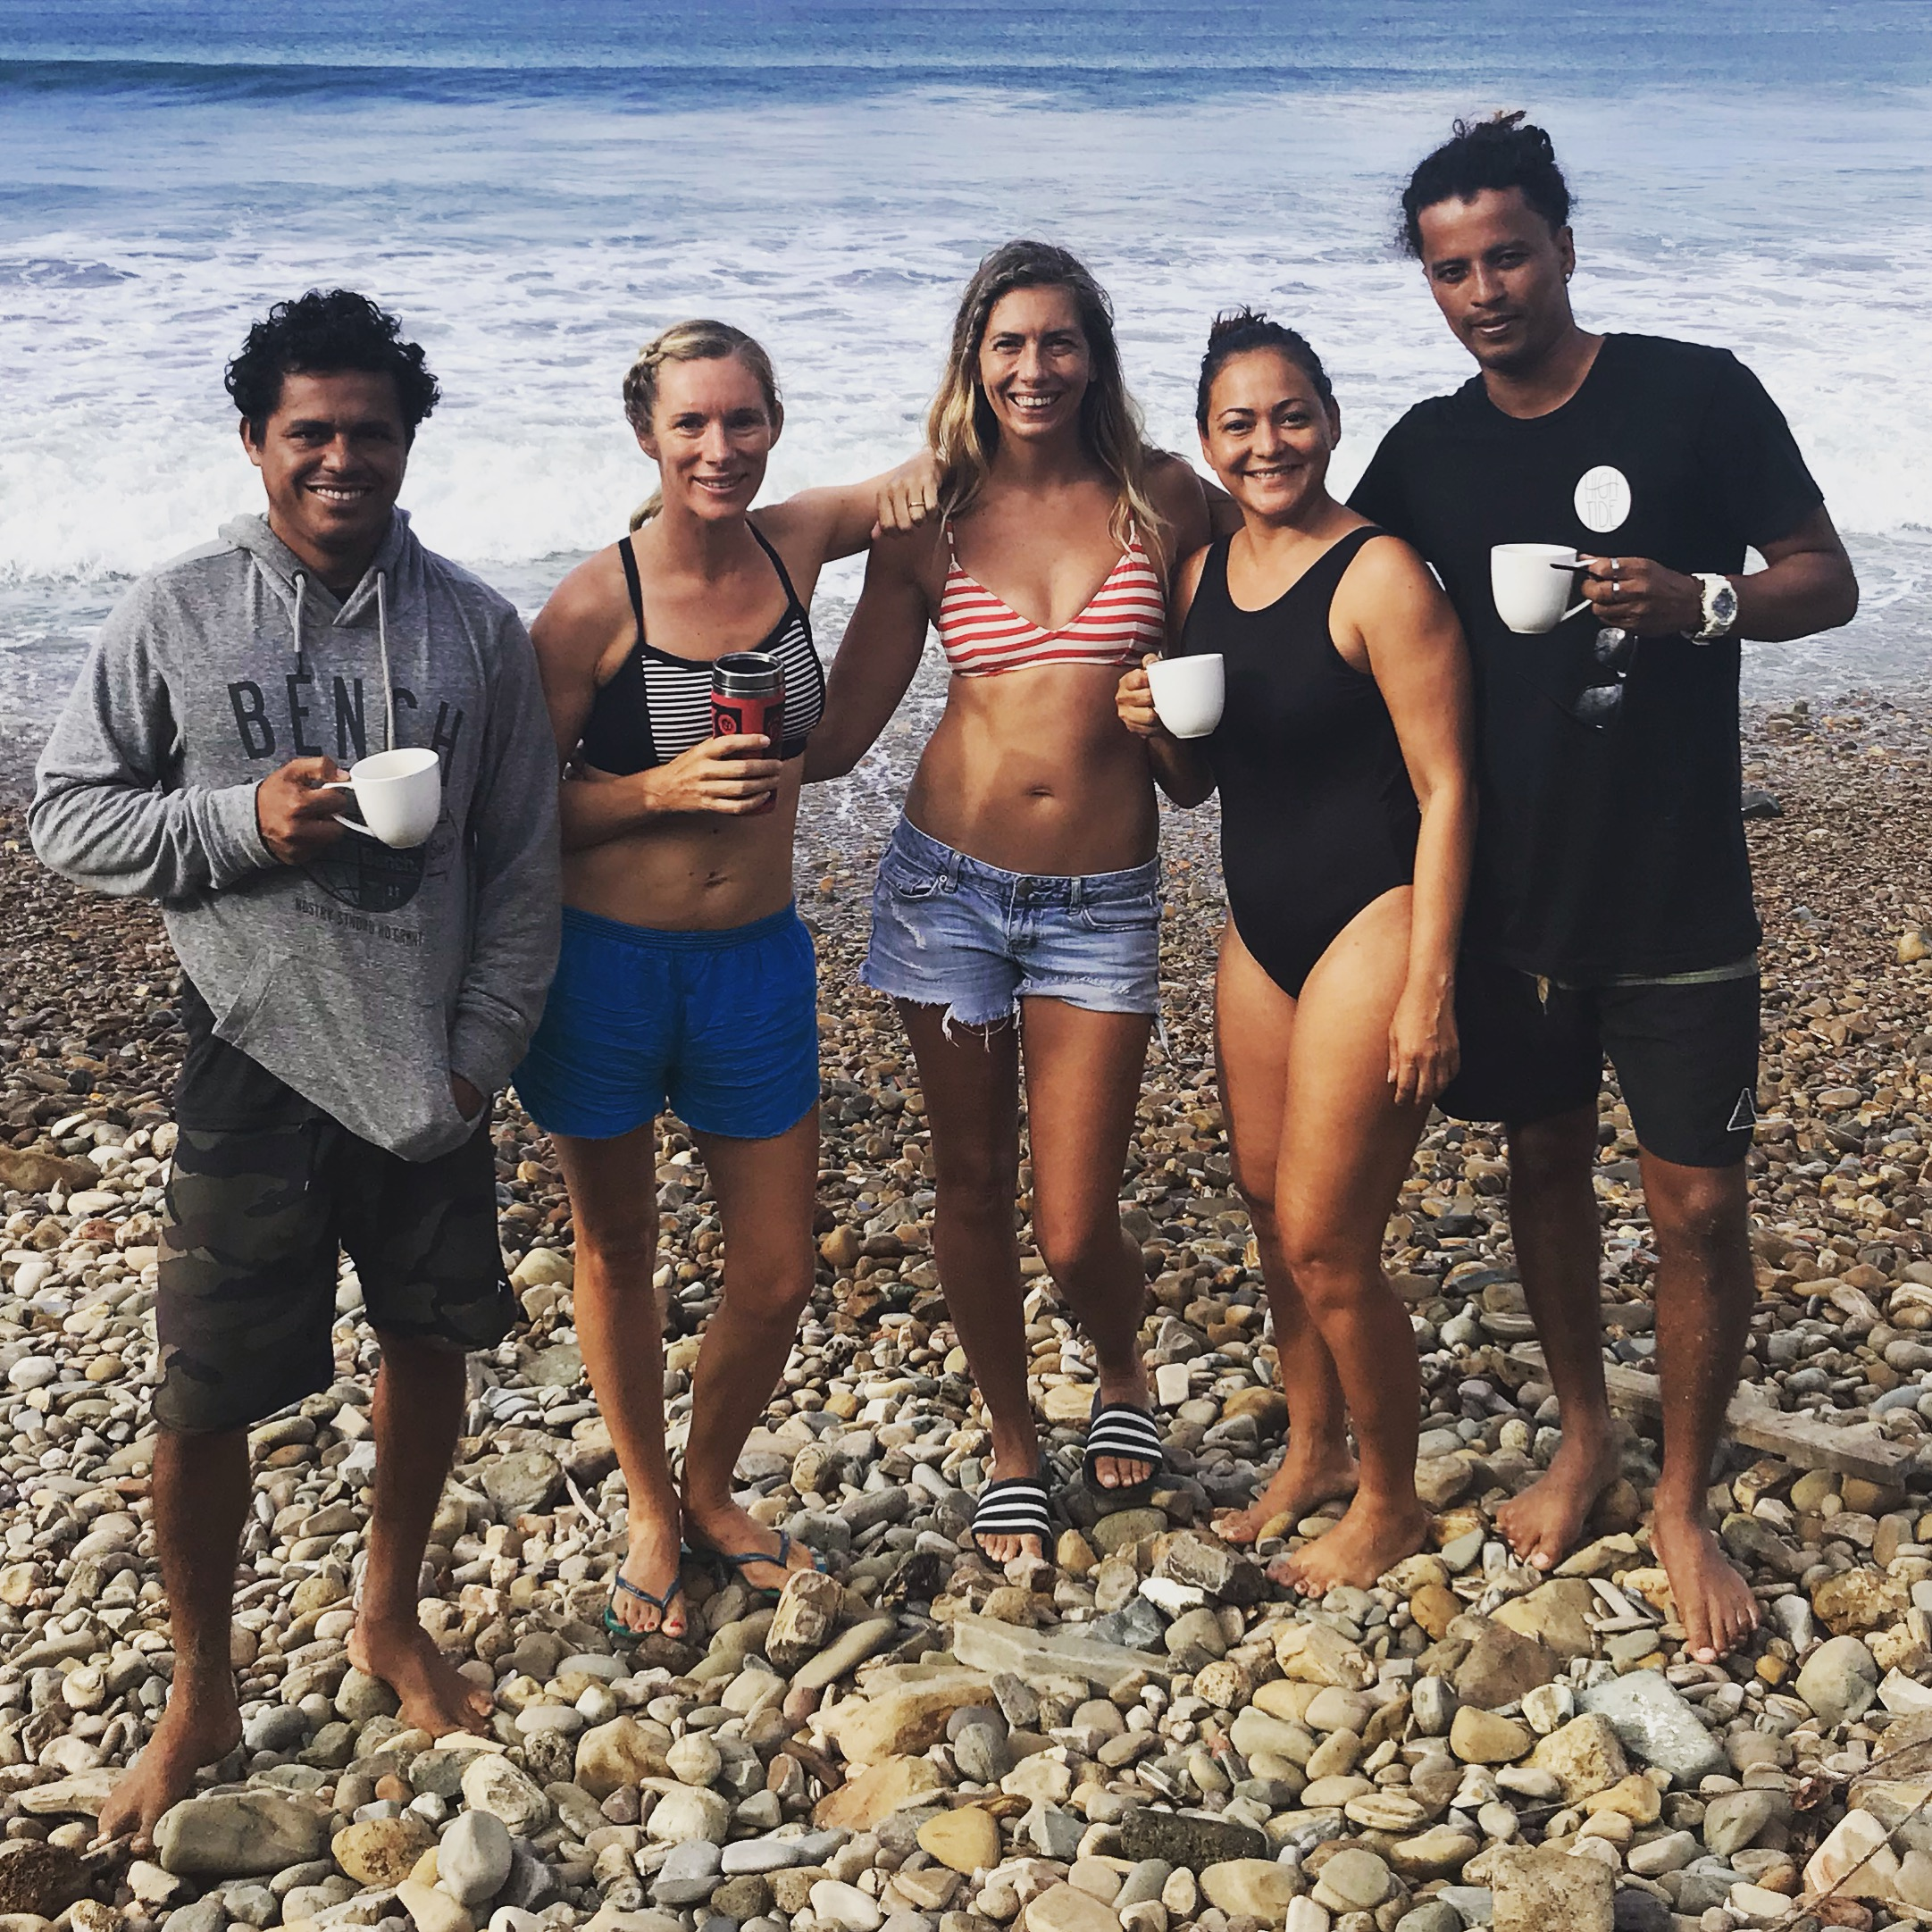 Morning coffee before surfing